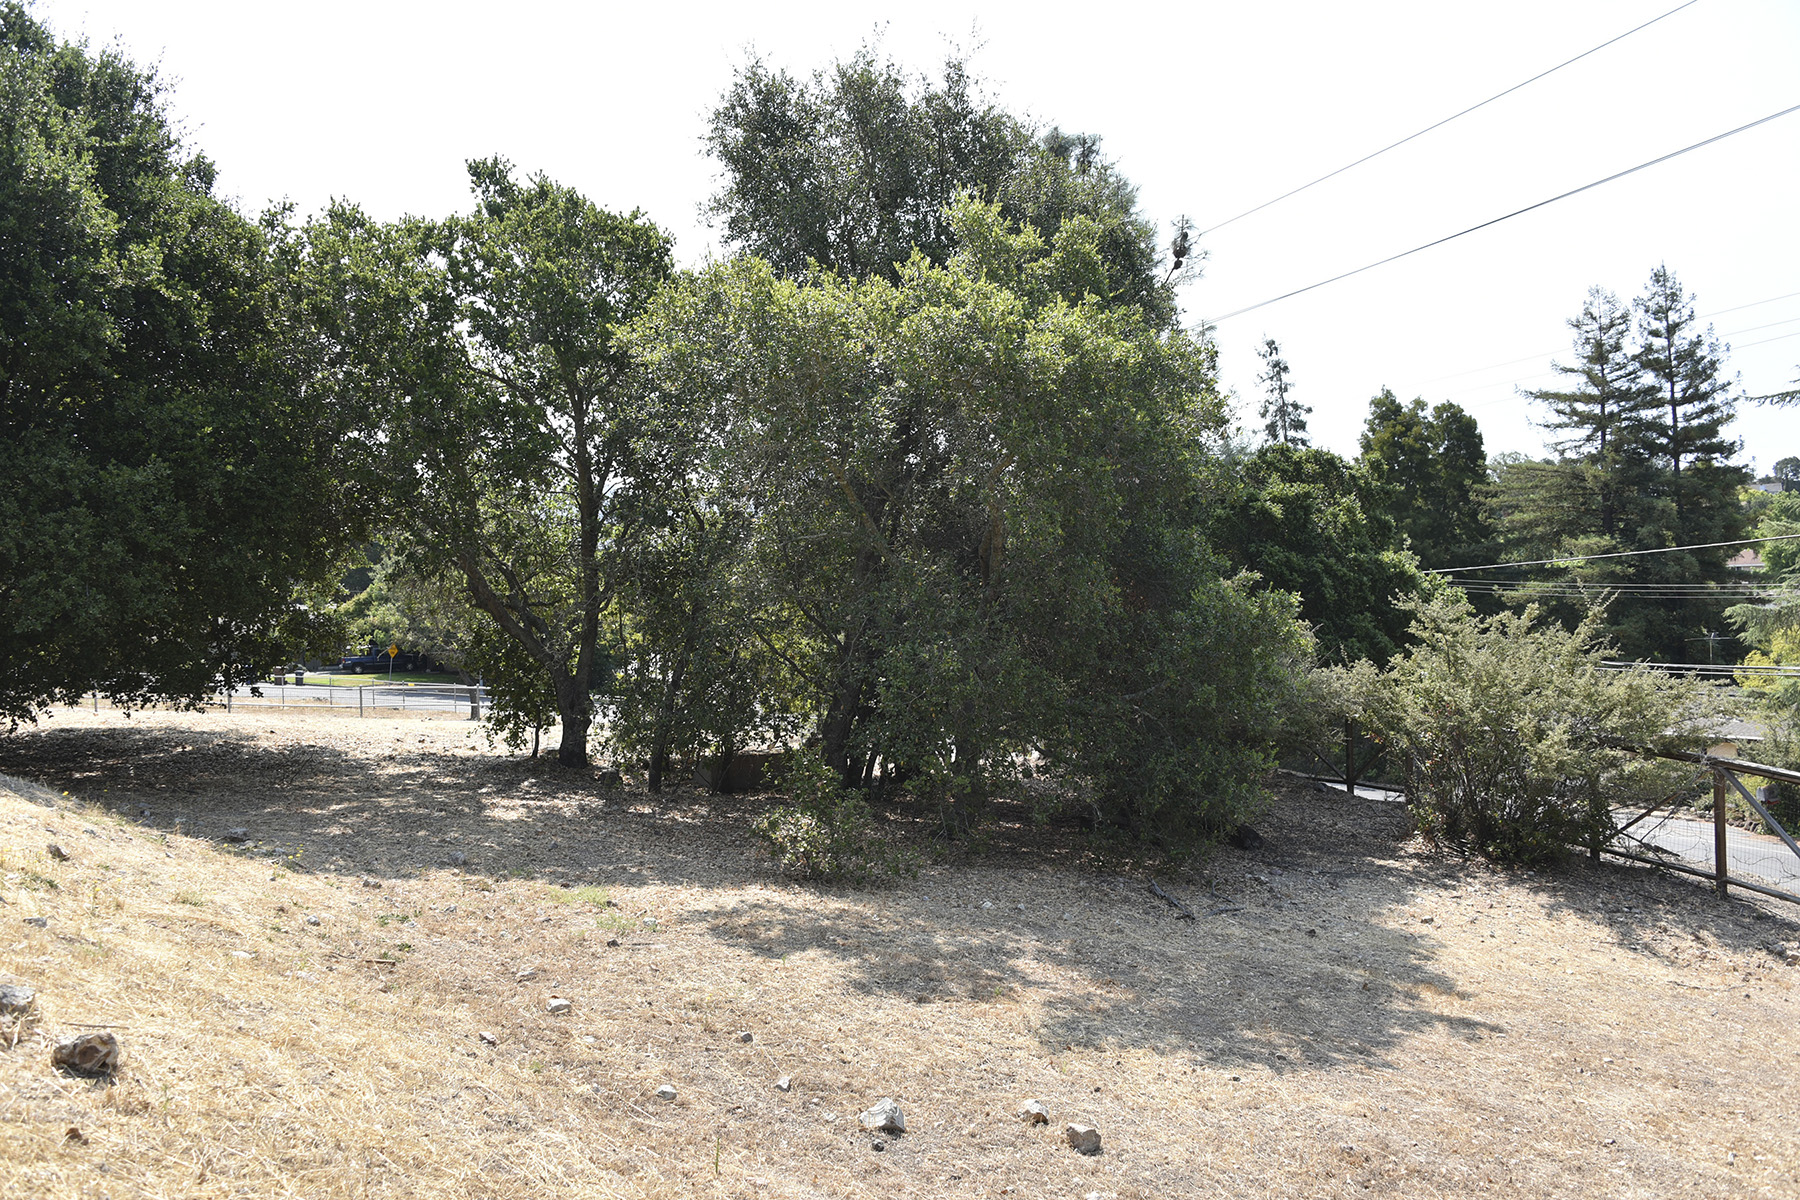 Land for Sale at Building Sites in a Wooded Hidden Glen Subdivision 19 Glory Court Napa, California, 94558 United States